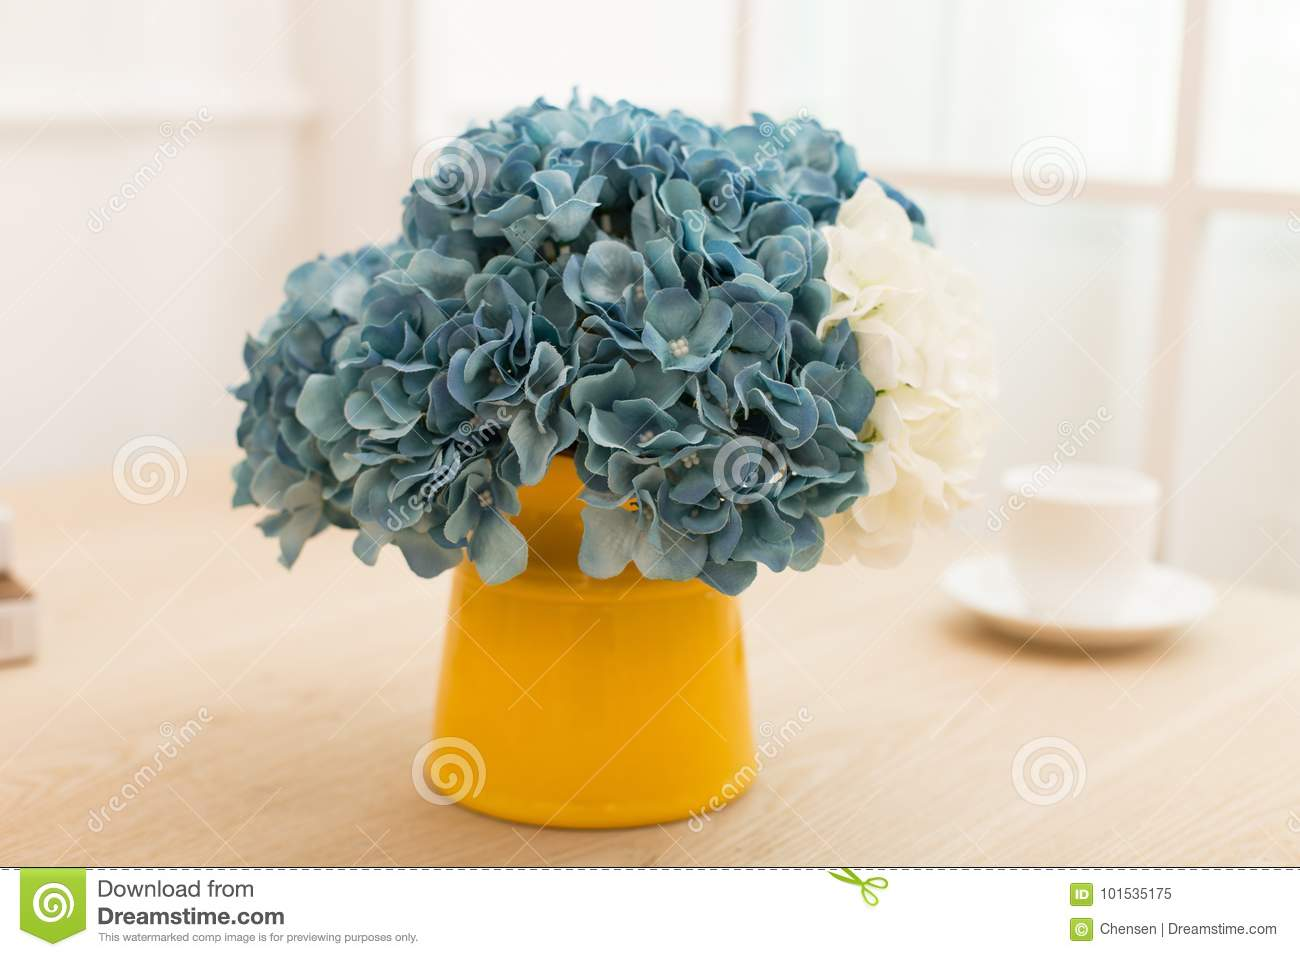 Flower Arrangement In Bottle On Table Office Desk Stock Image Image Of Living Flower 101535175